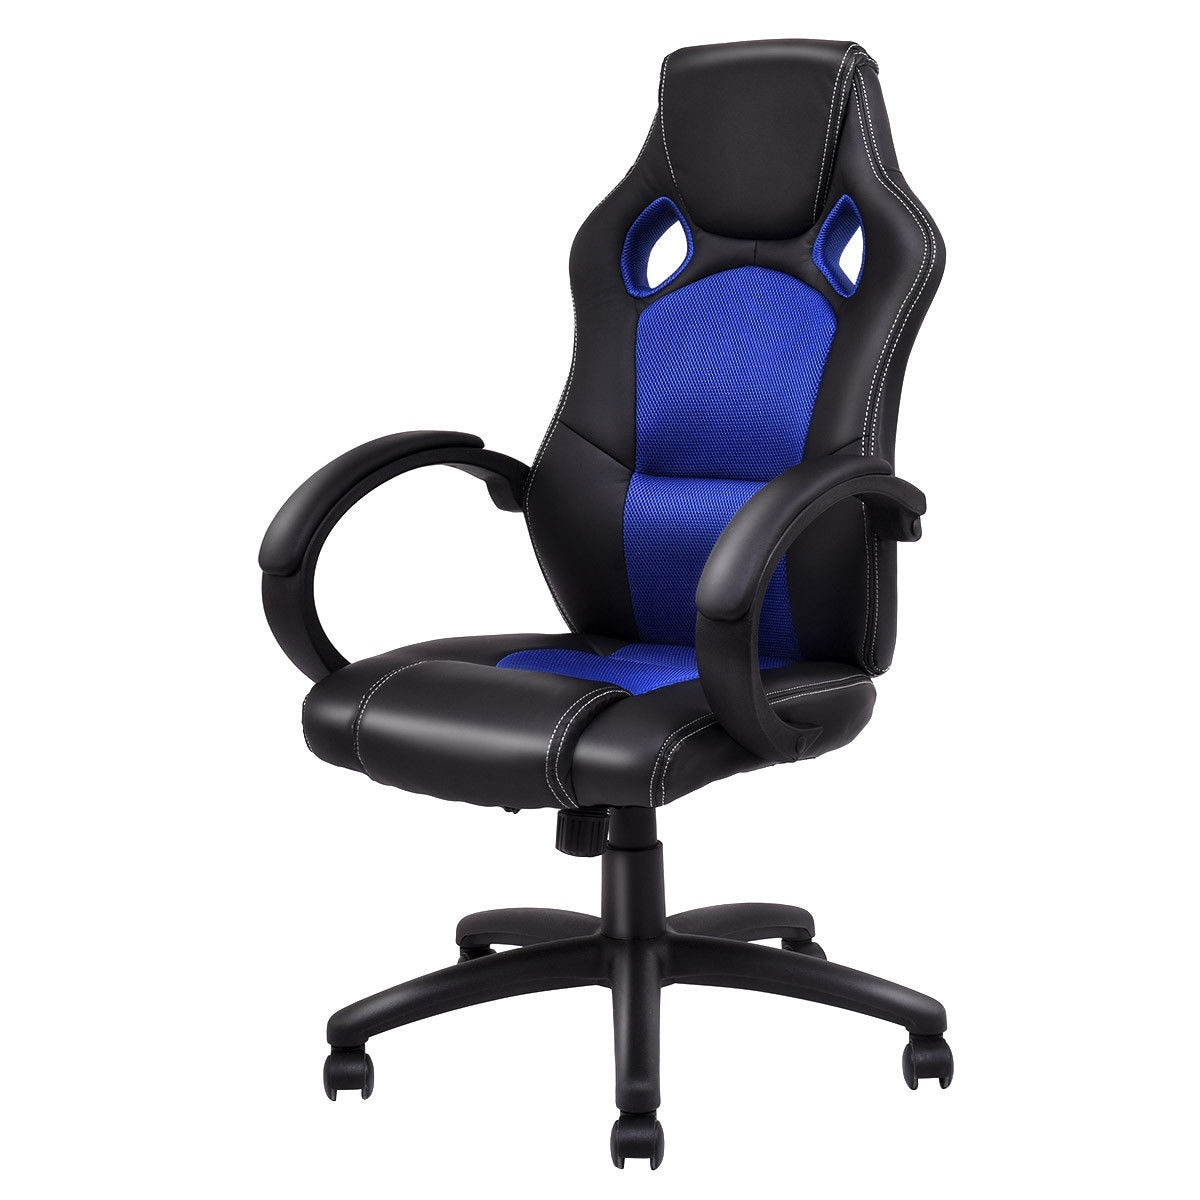 Costway High Back Racing Chair Bucket Seat Office Desk Gaming Chair Swivel Executive New